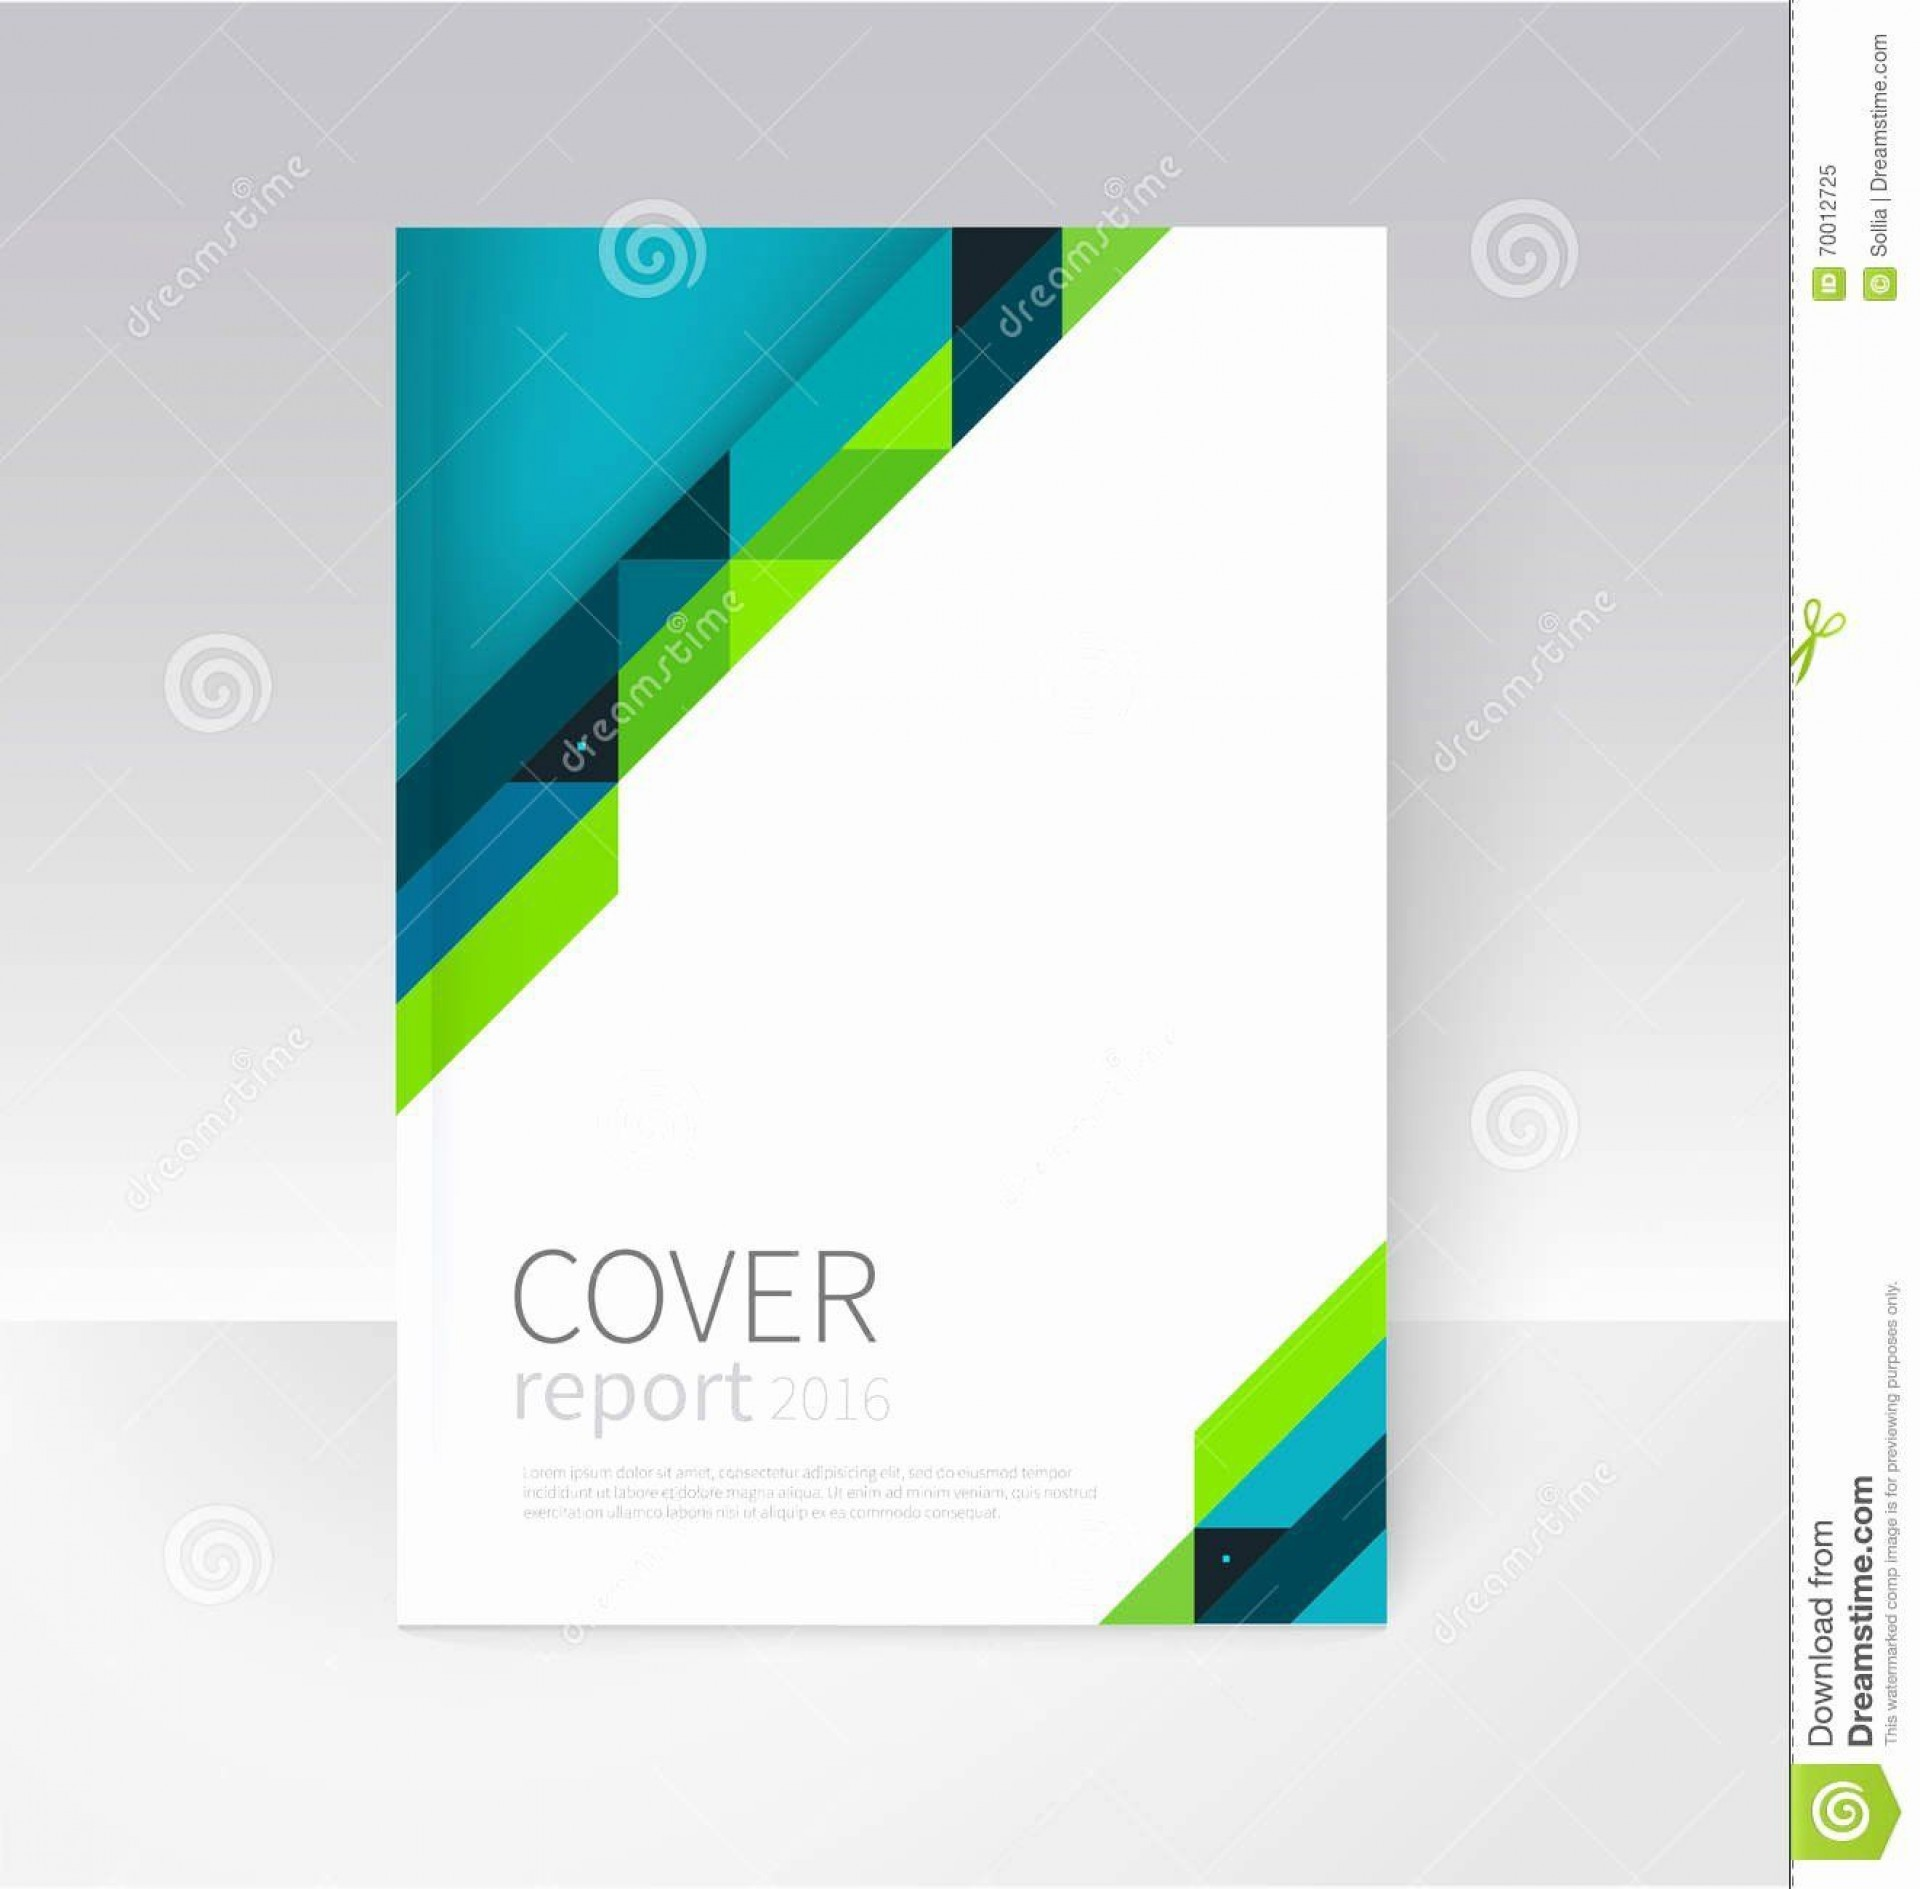 004 Breathtaking Book Cover Page Design Template Free Download High Definition  Front1920